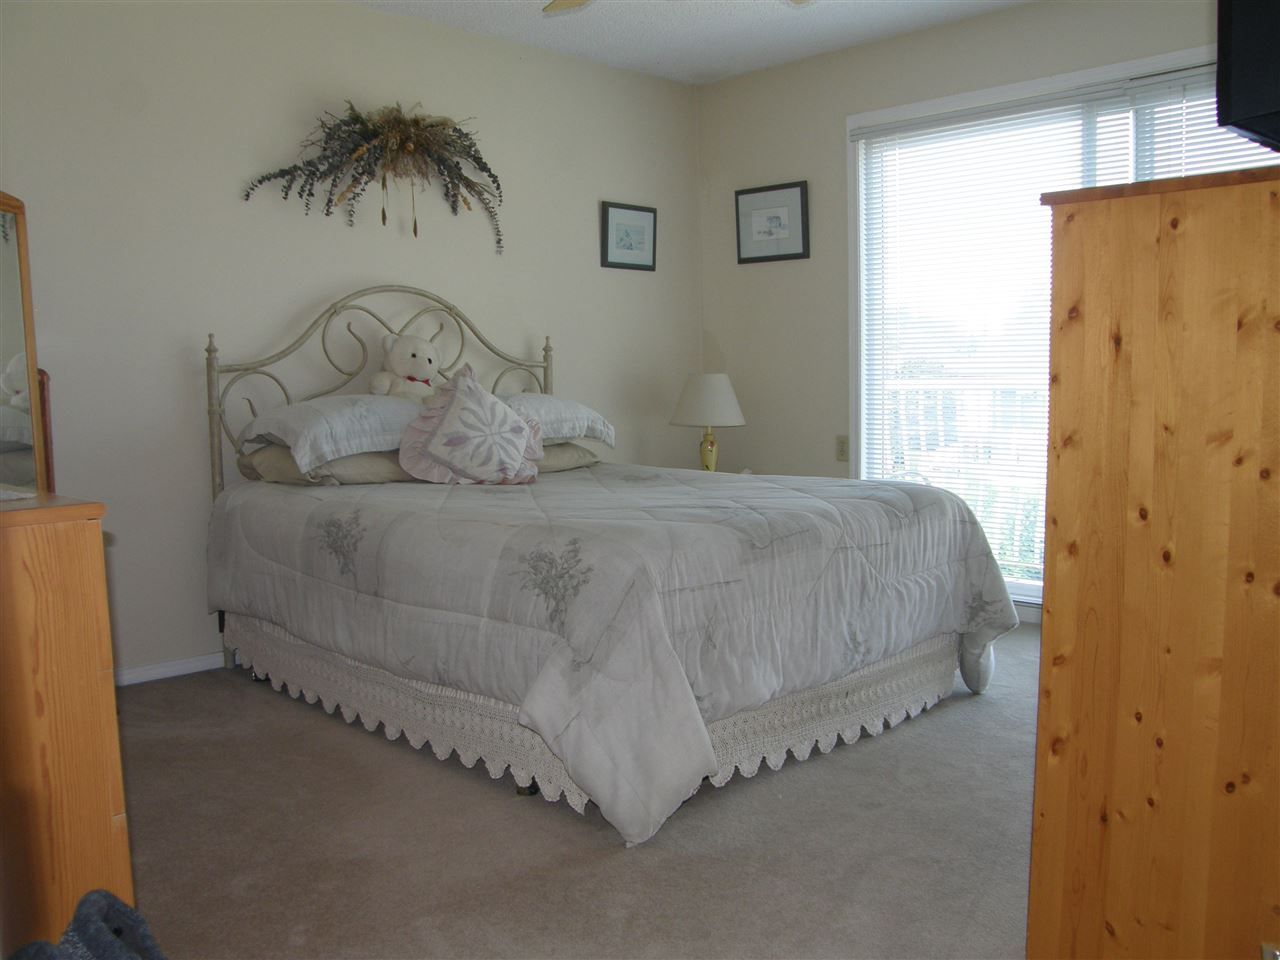 Photo 9: Photos: 1830 REEVES Place in Abbotsford: Central Abbotsford House for sale : MLS®# R2486642